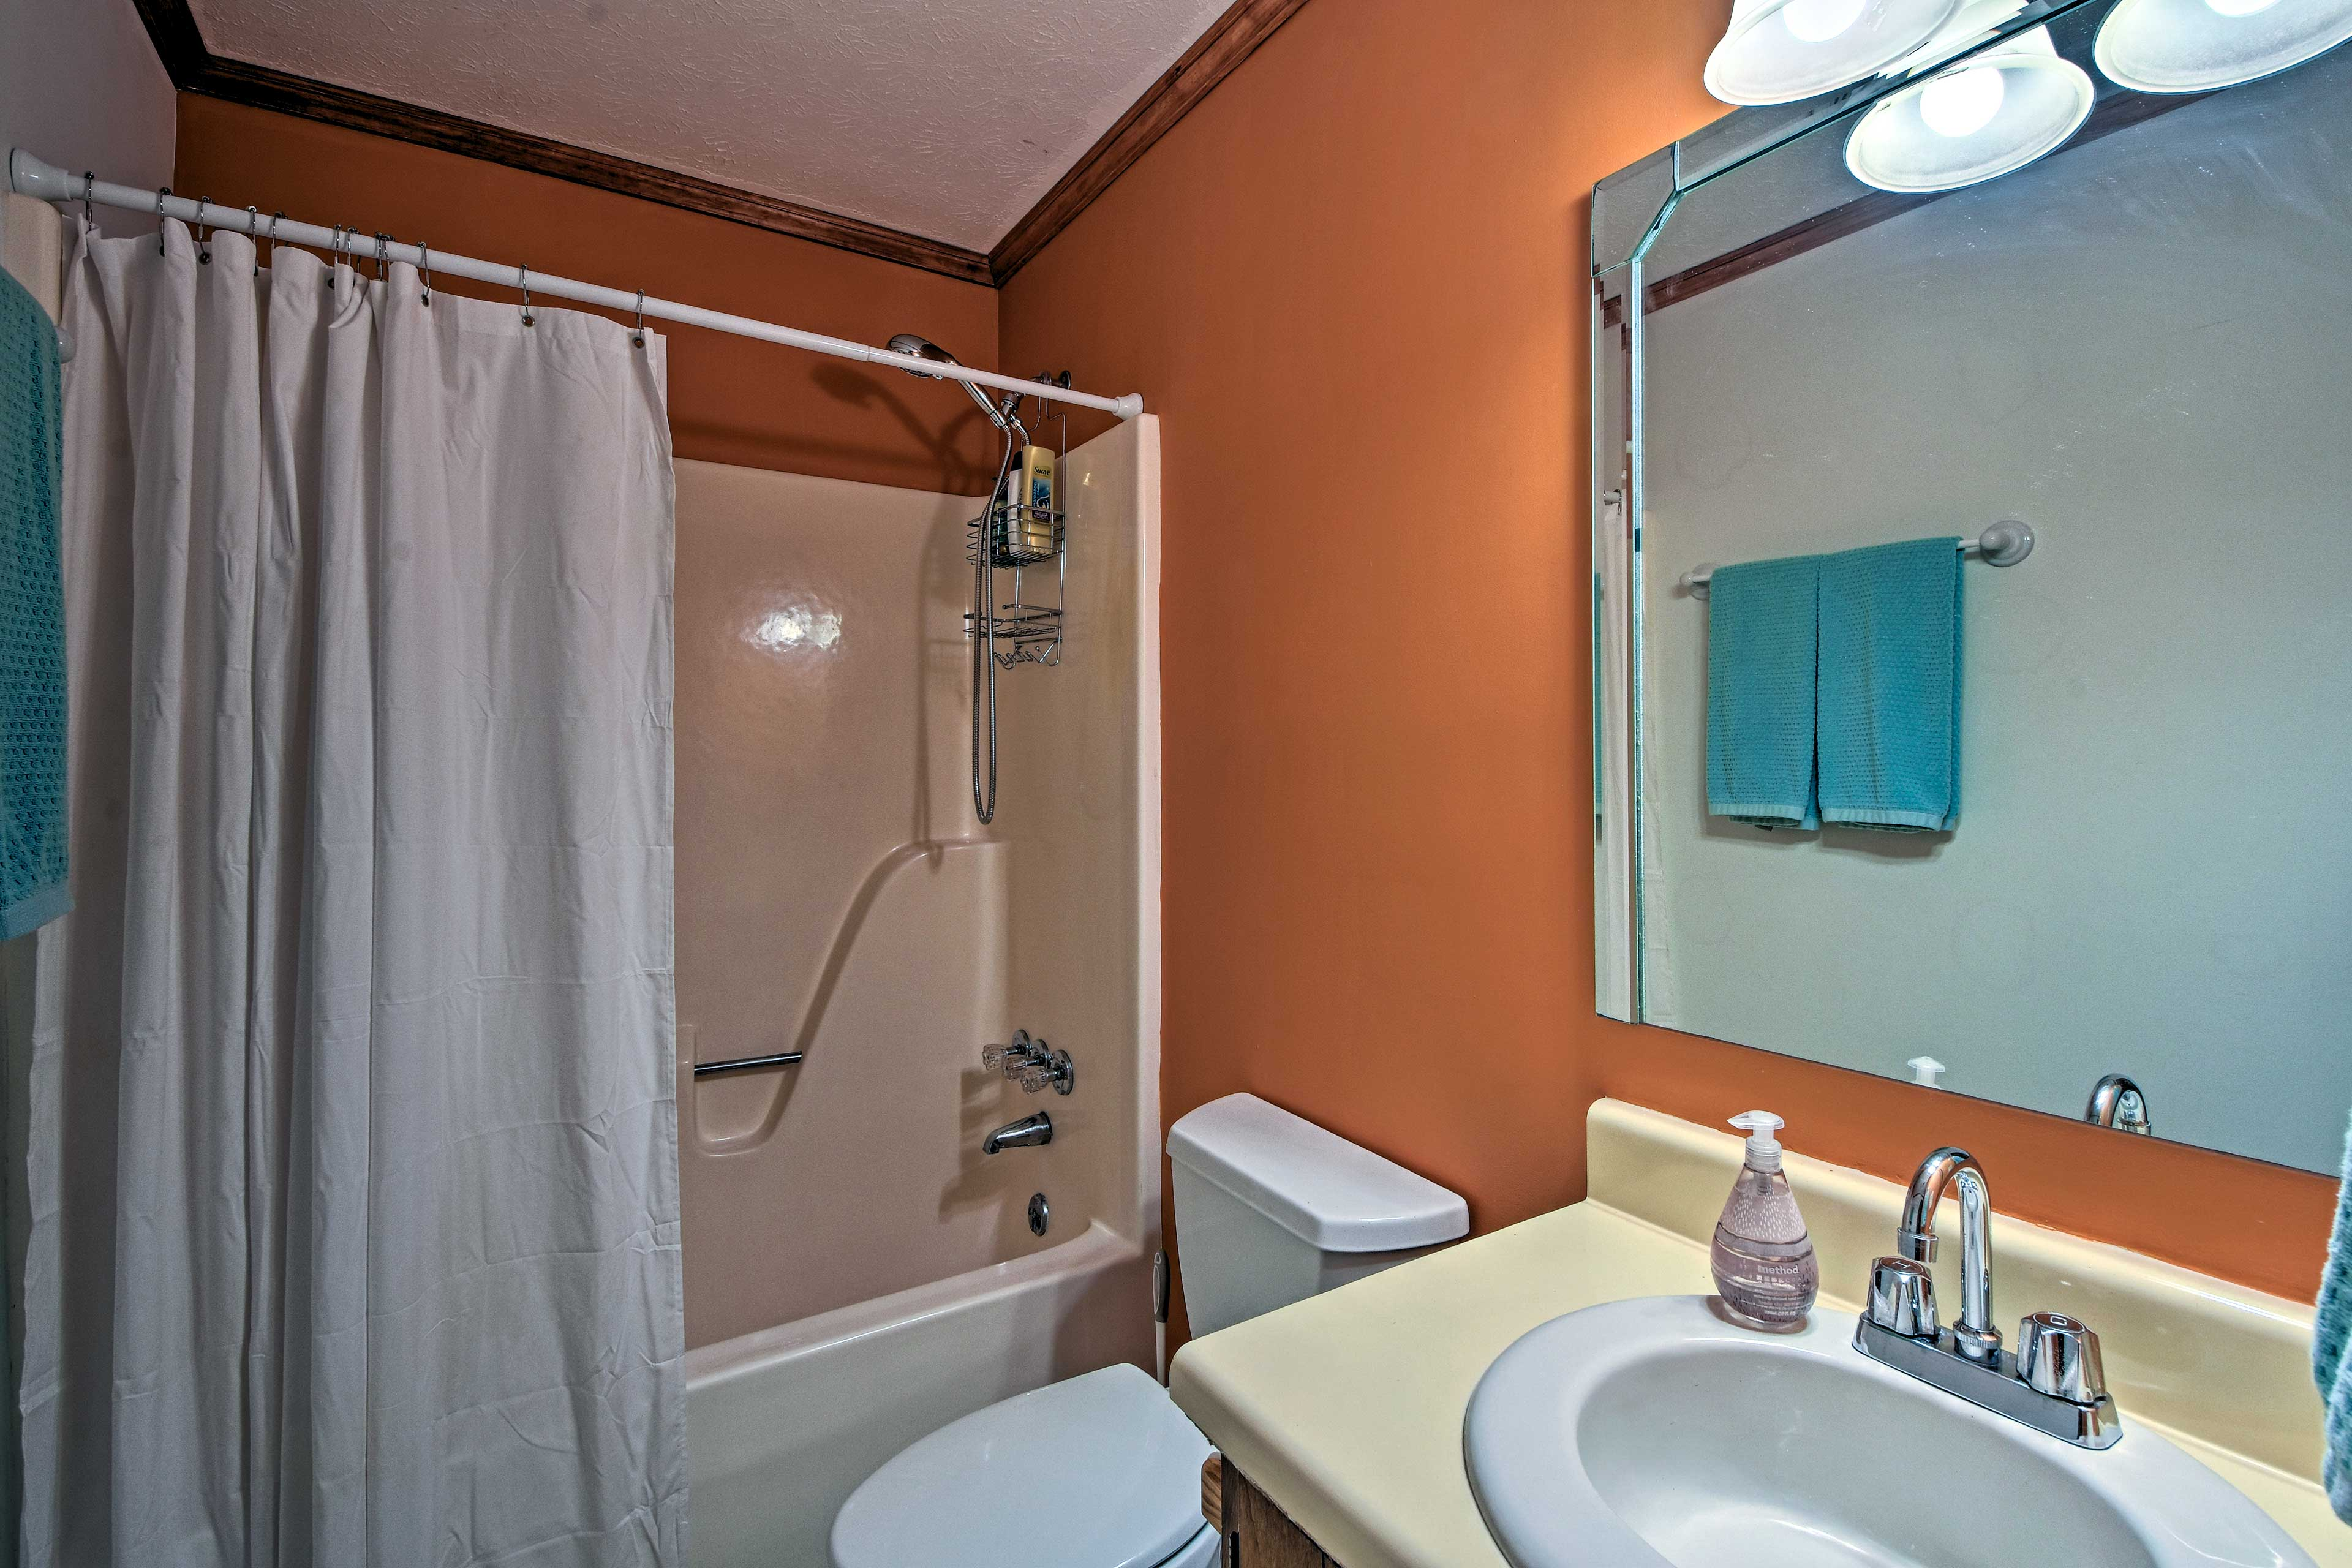 The second full bathroom is located on the lower level with a shower/tub combo.